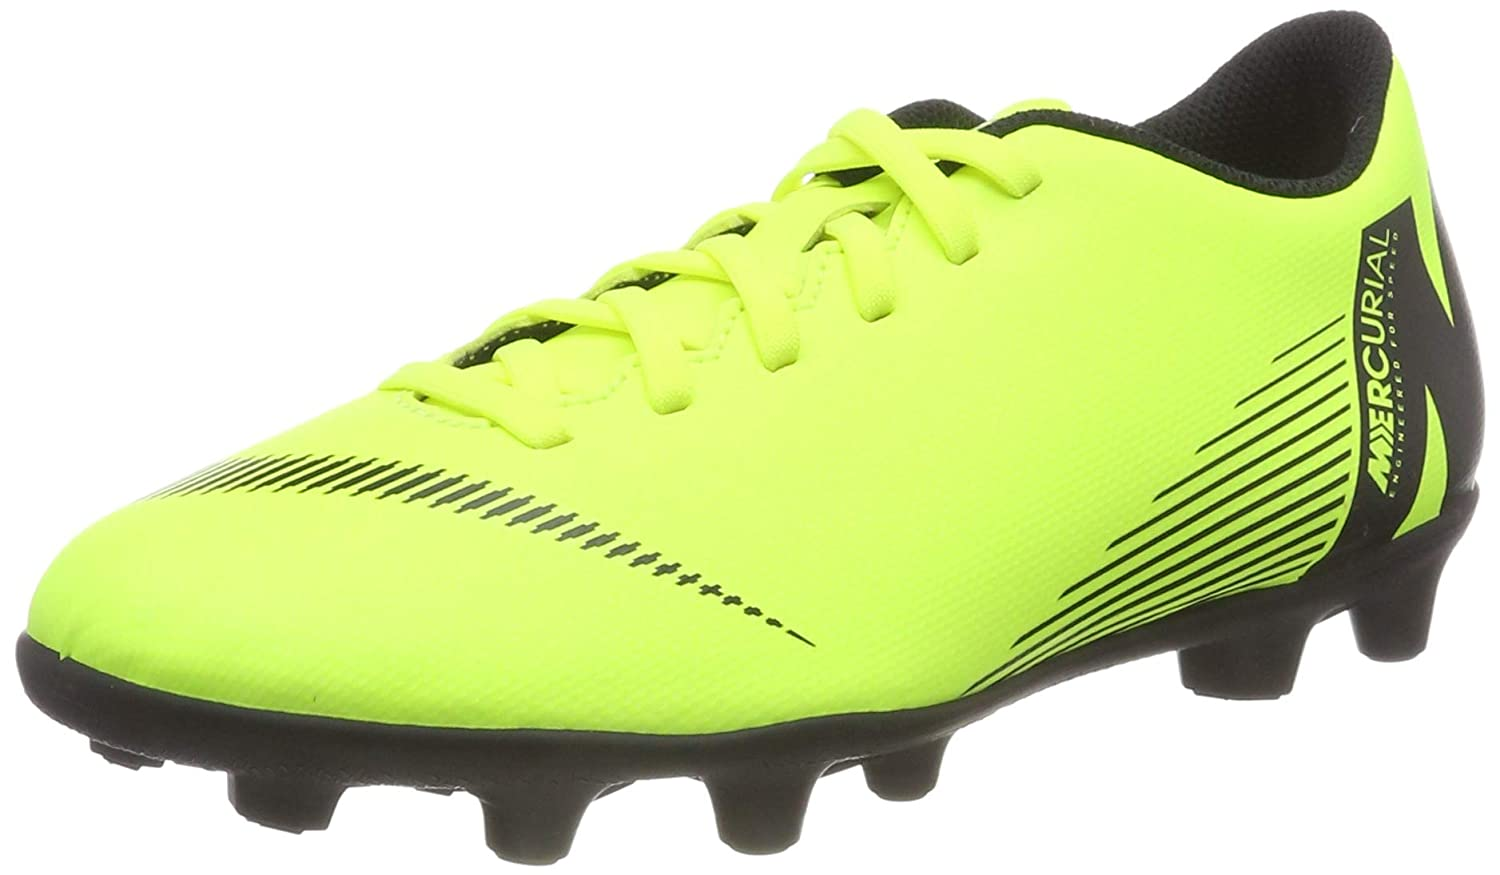 Nike Vapor 12 Club MG, Chaussures de Football Mixte Adulte AH7378